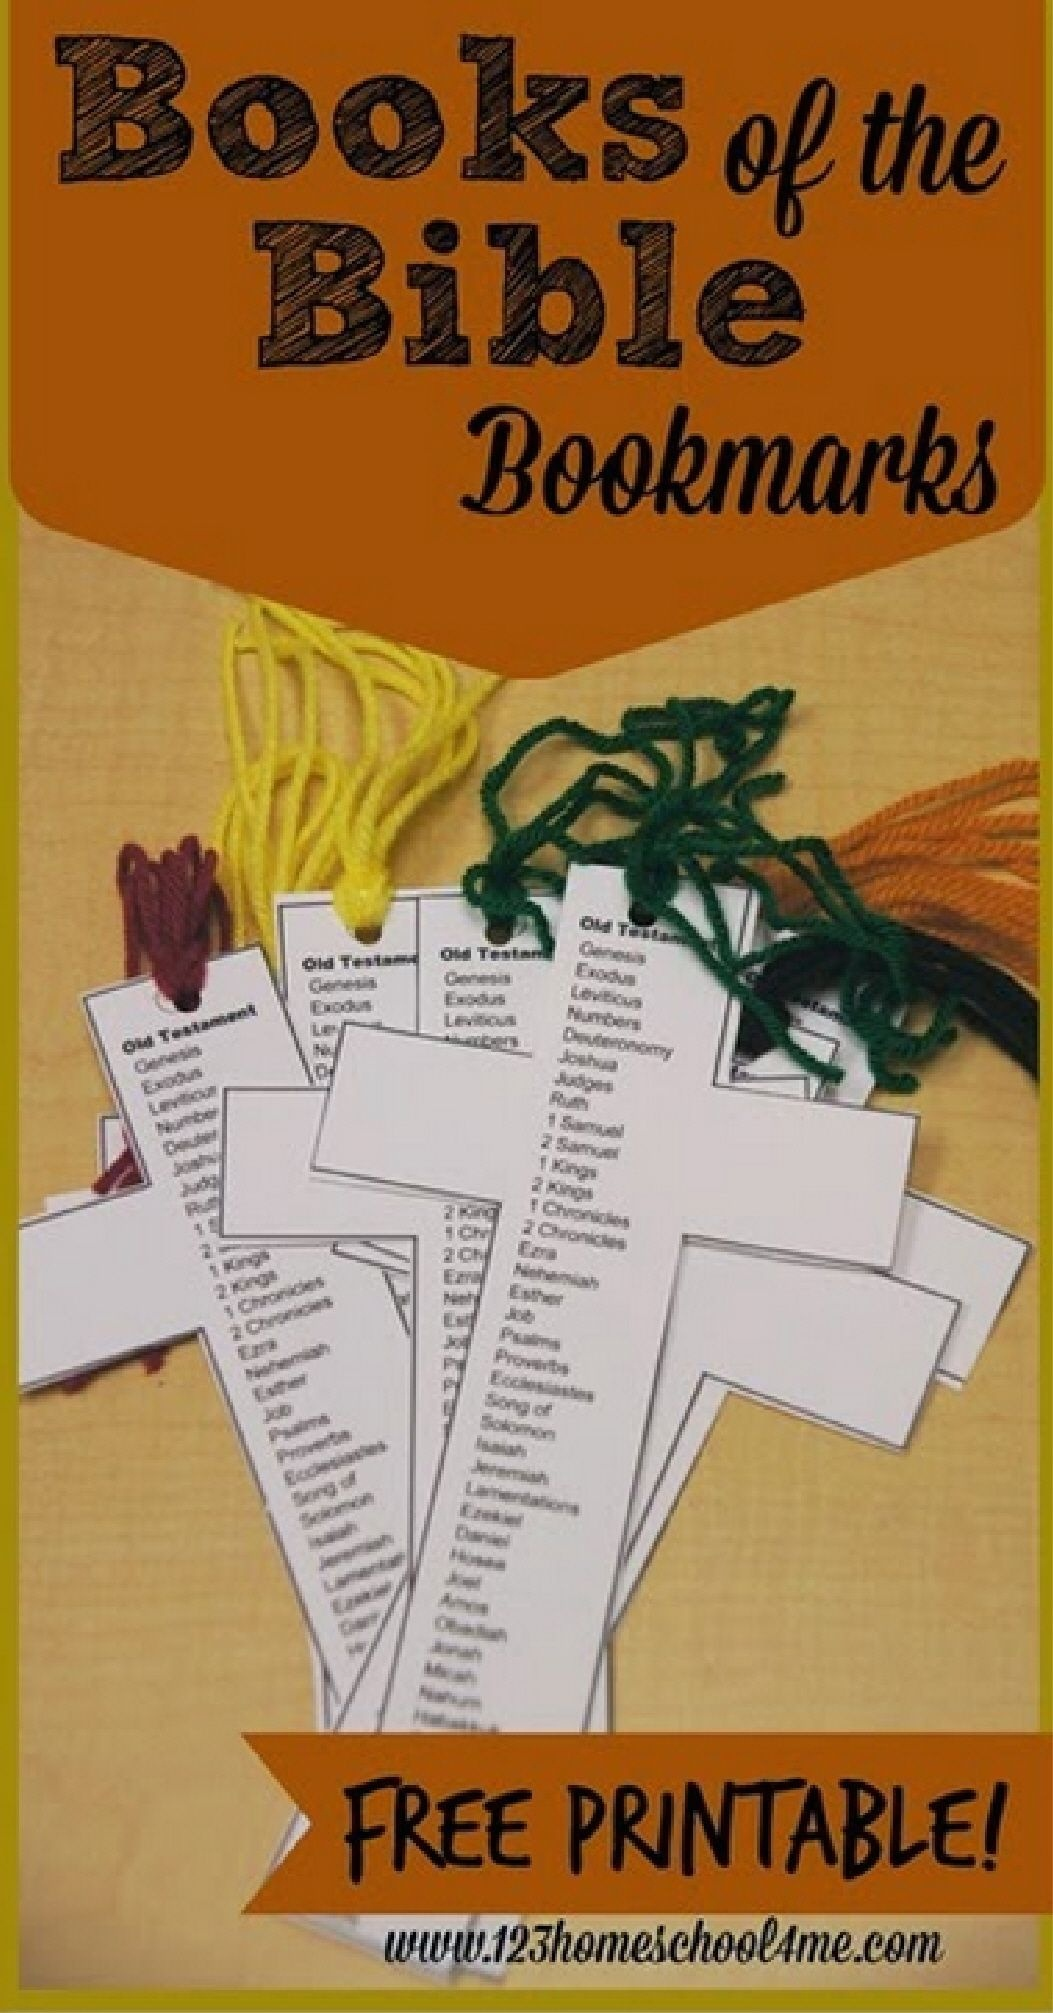 Free Books Of The Bible Bookmark | Sunday School Ideas | Bible - Books Of The Bible Bookmark Printable Free